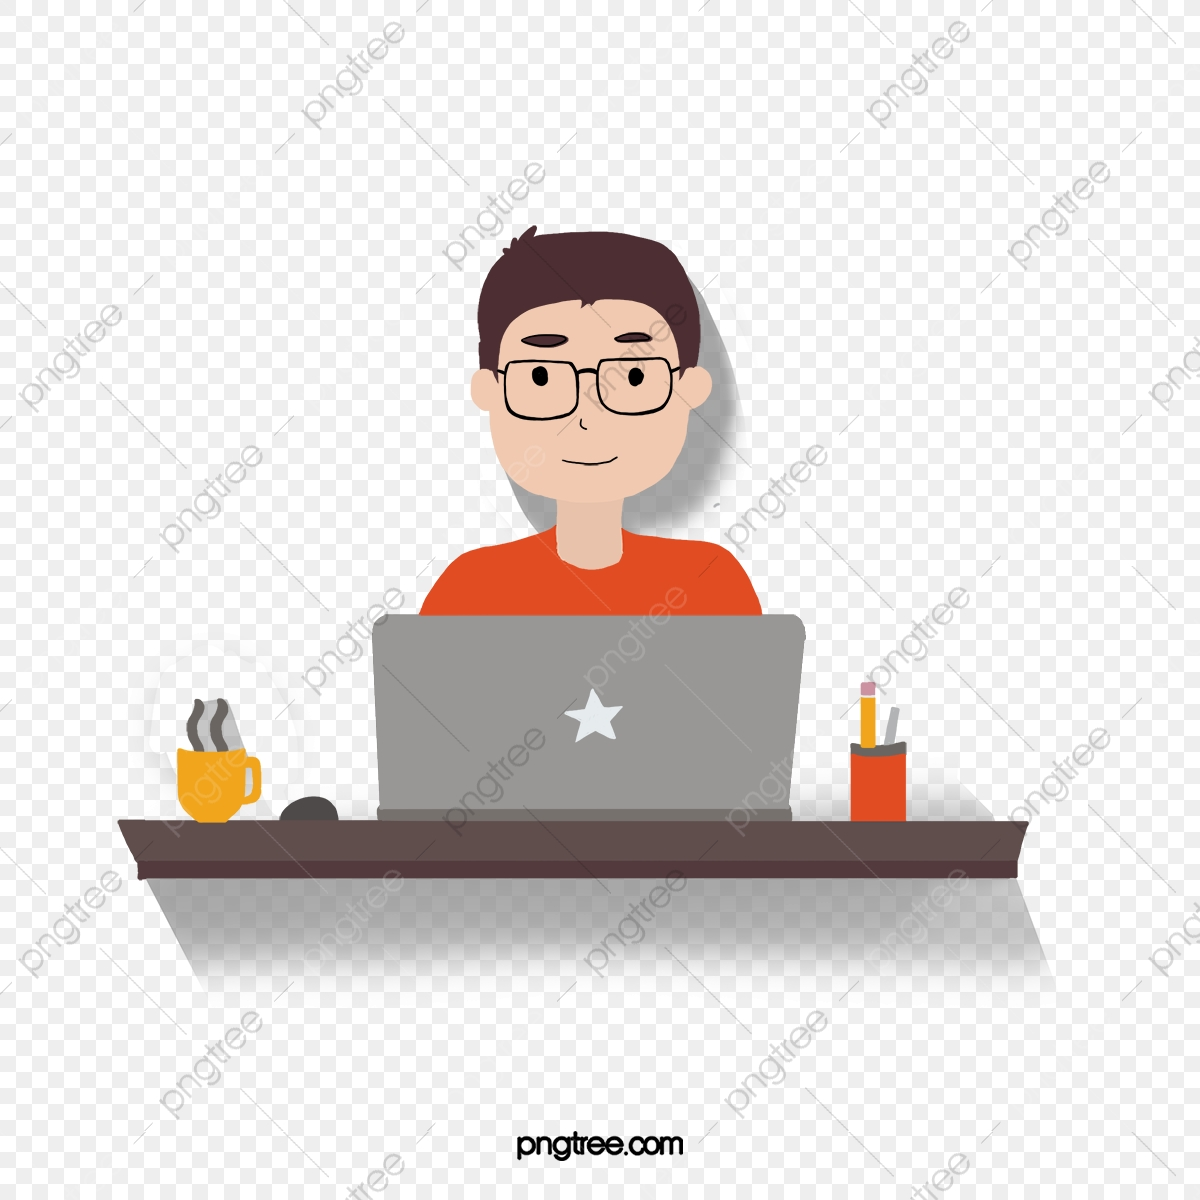 Office Figures, Office Clipart, Computer, Table PNG.